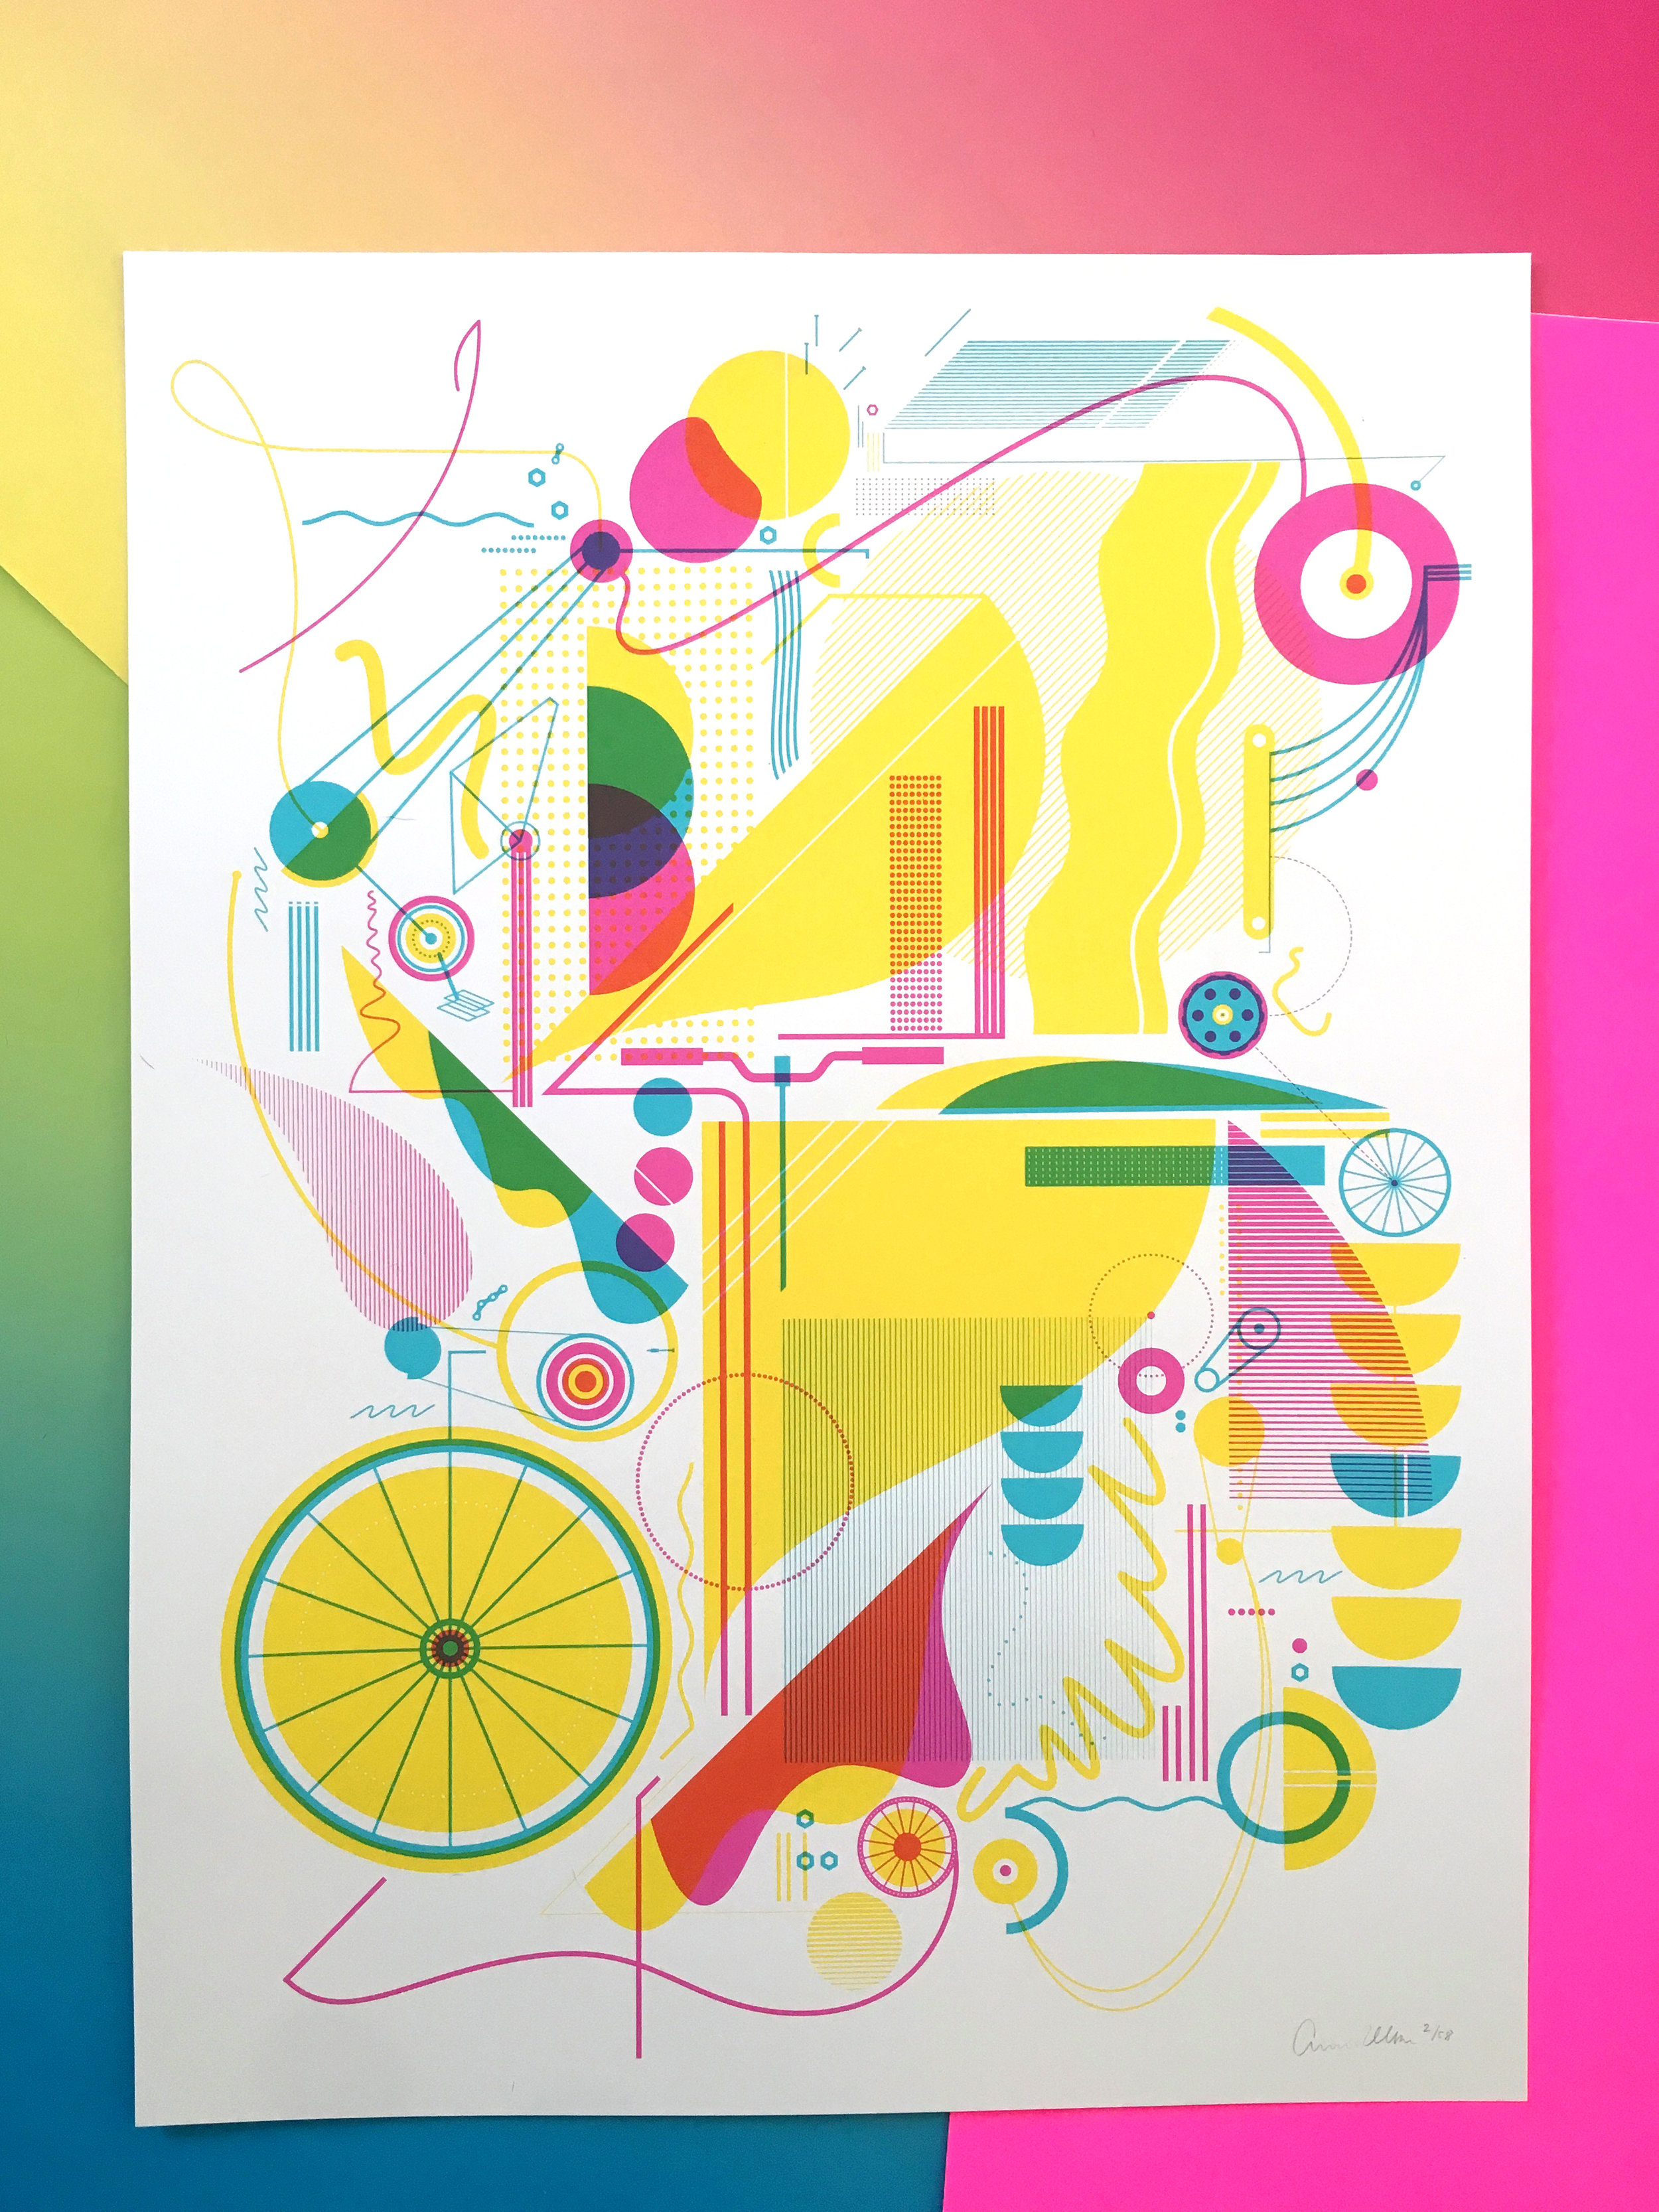 Created another Artcrank poster